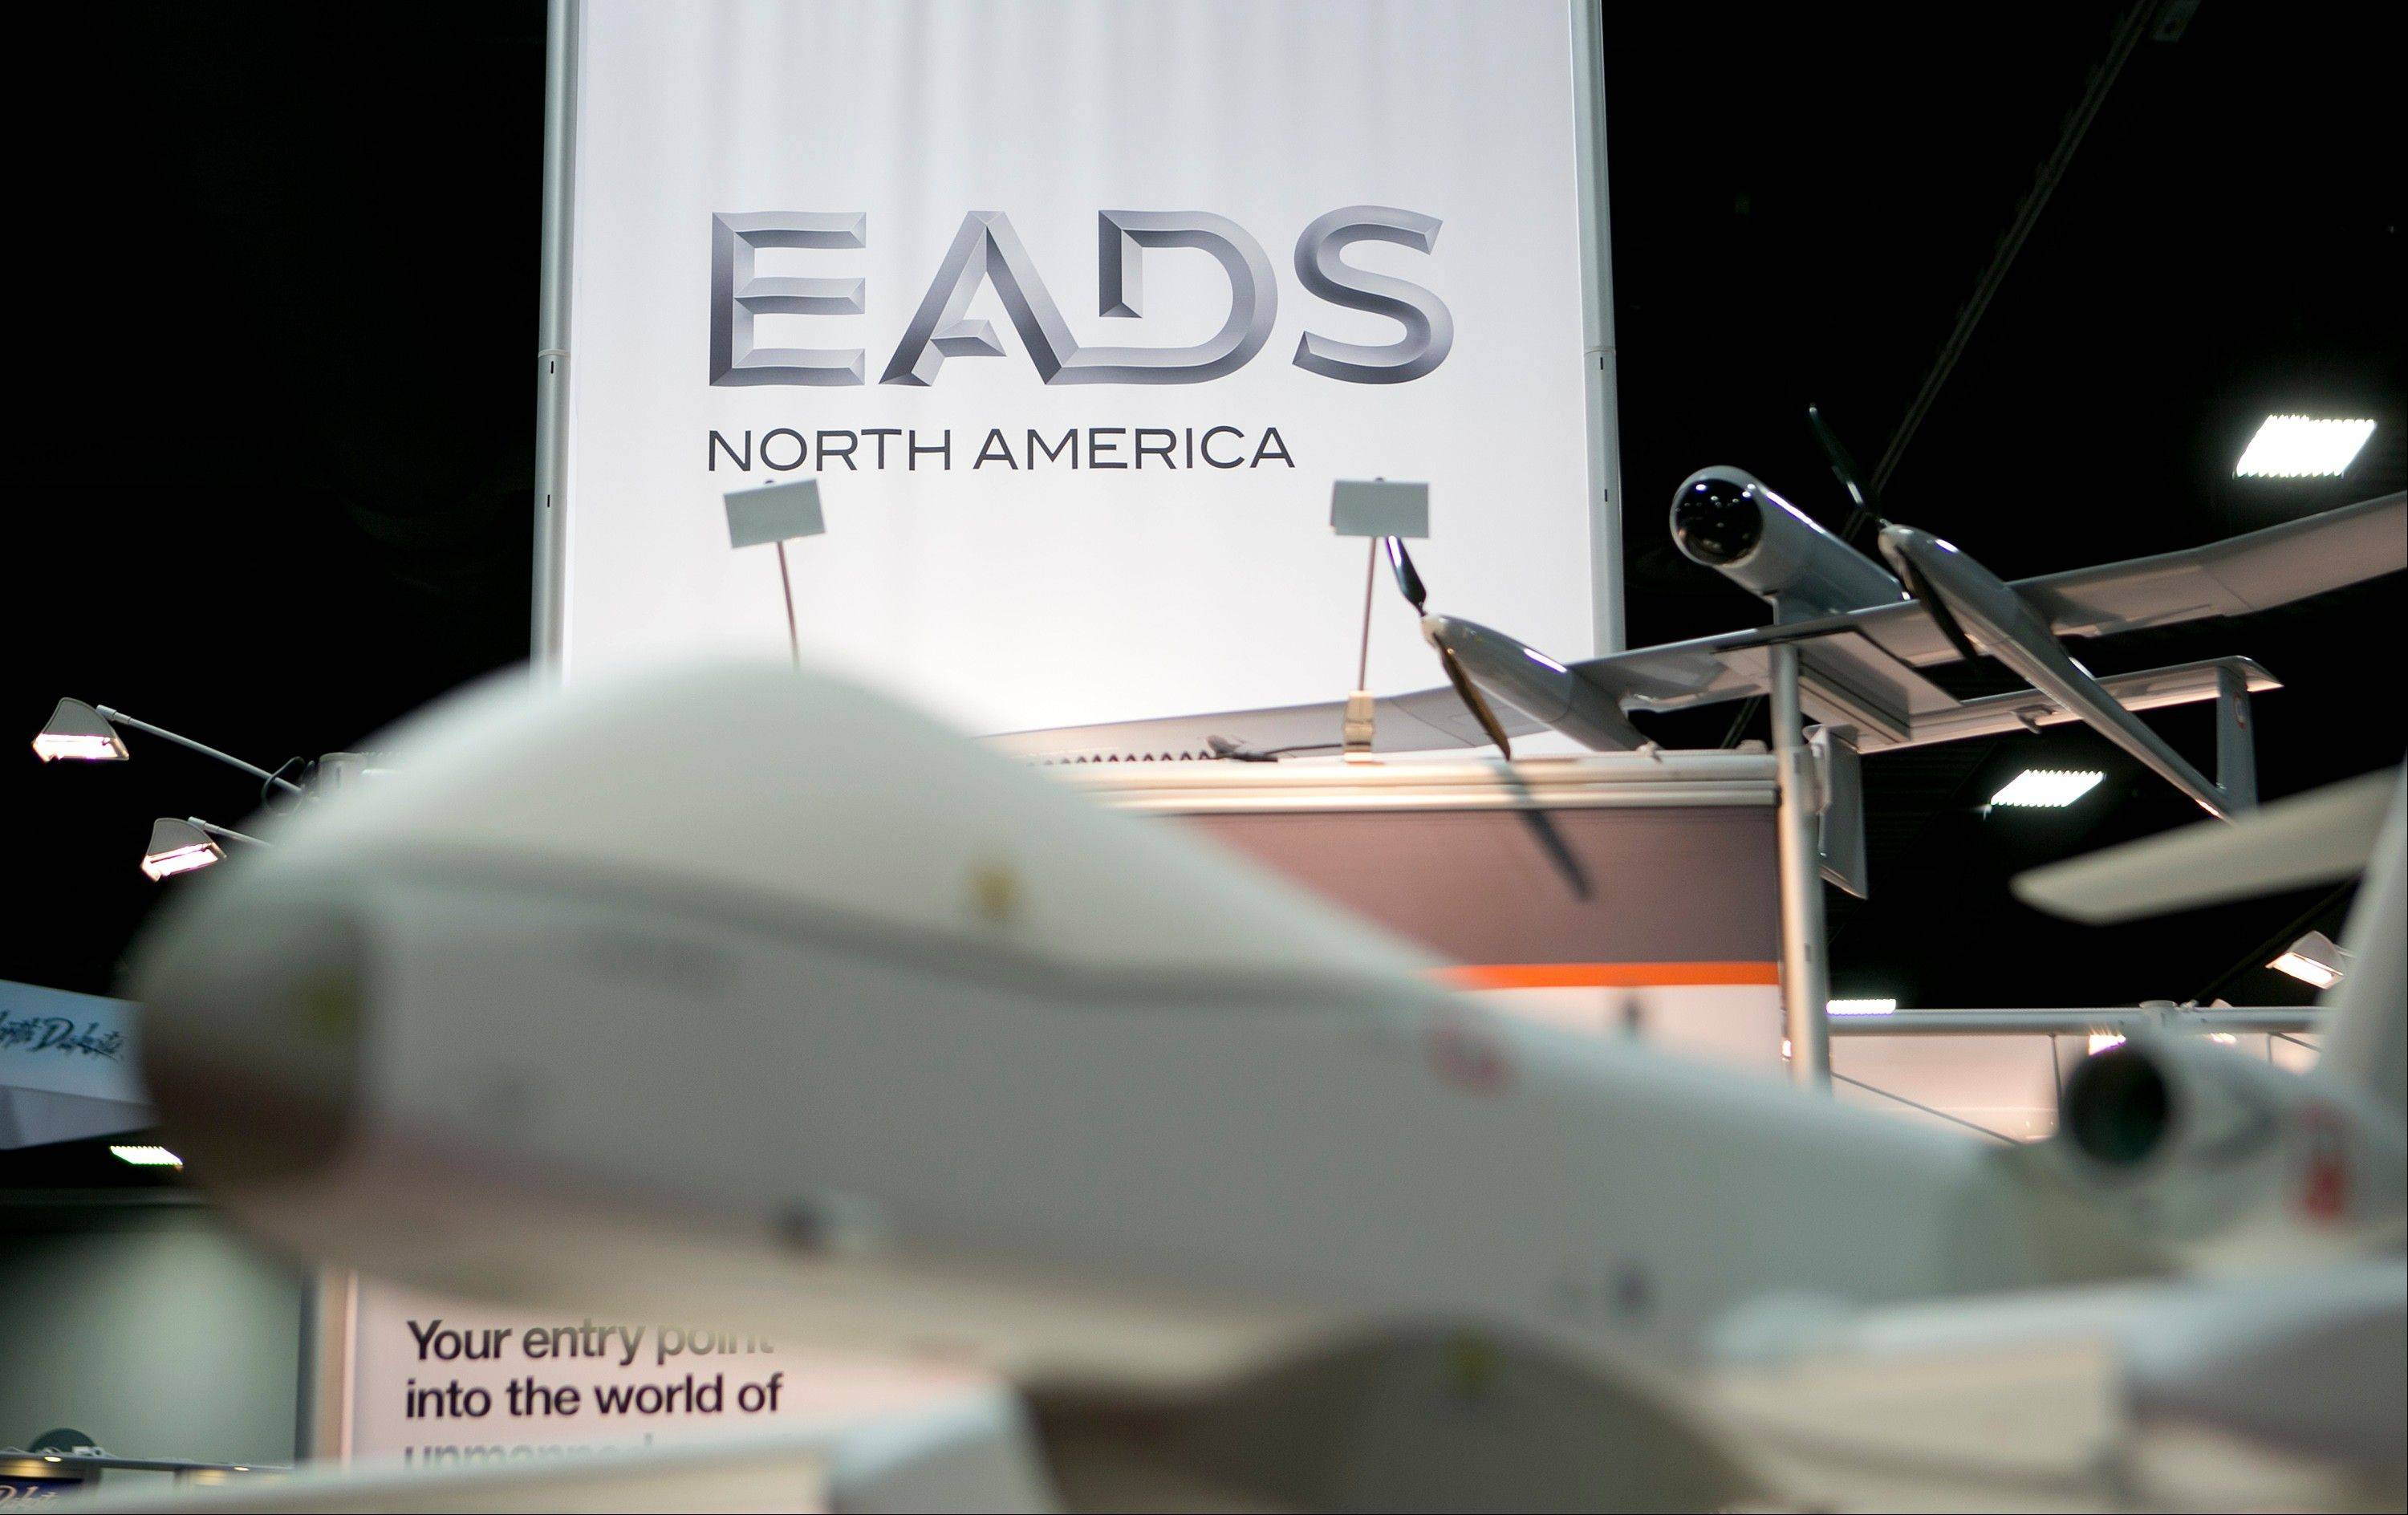 The European Aeronautic, Defence & Space Co. North America (EADS) logo is seen past a Cassidian Ltd., a unit of EADS, Future MALE unmanned aircraft system (UAS) on the exhibition floor at the Association for Unmanned Vehicle Systems International (AUVSI) unmanned systems conference in Washington. AUVSI is the world's largest nonprofit organization devoted exclusively to advancing the unmanned systems and robotics community.